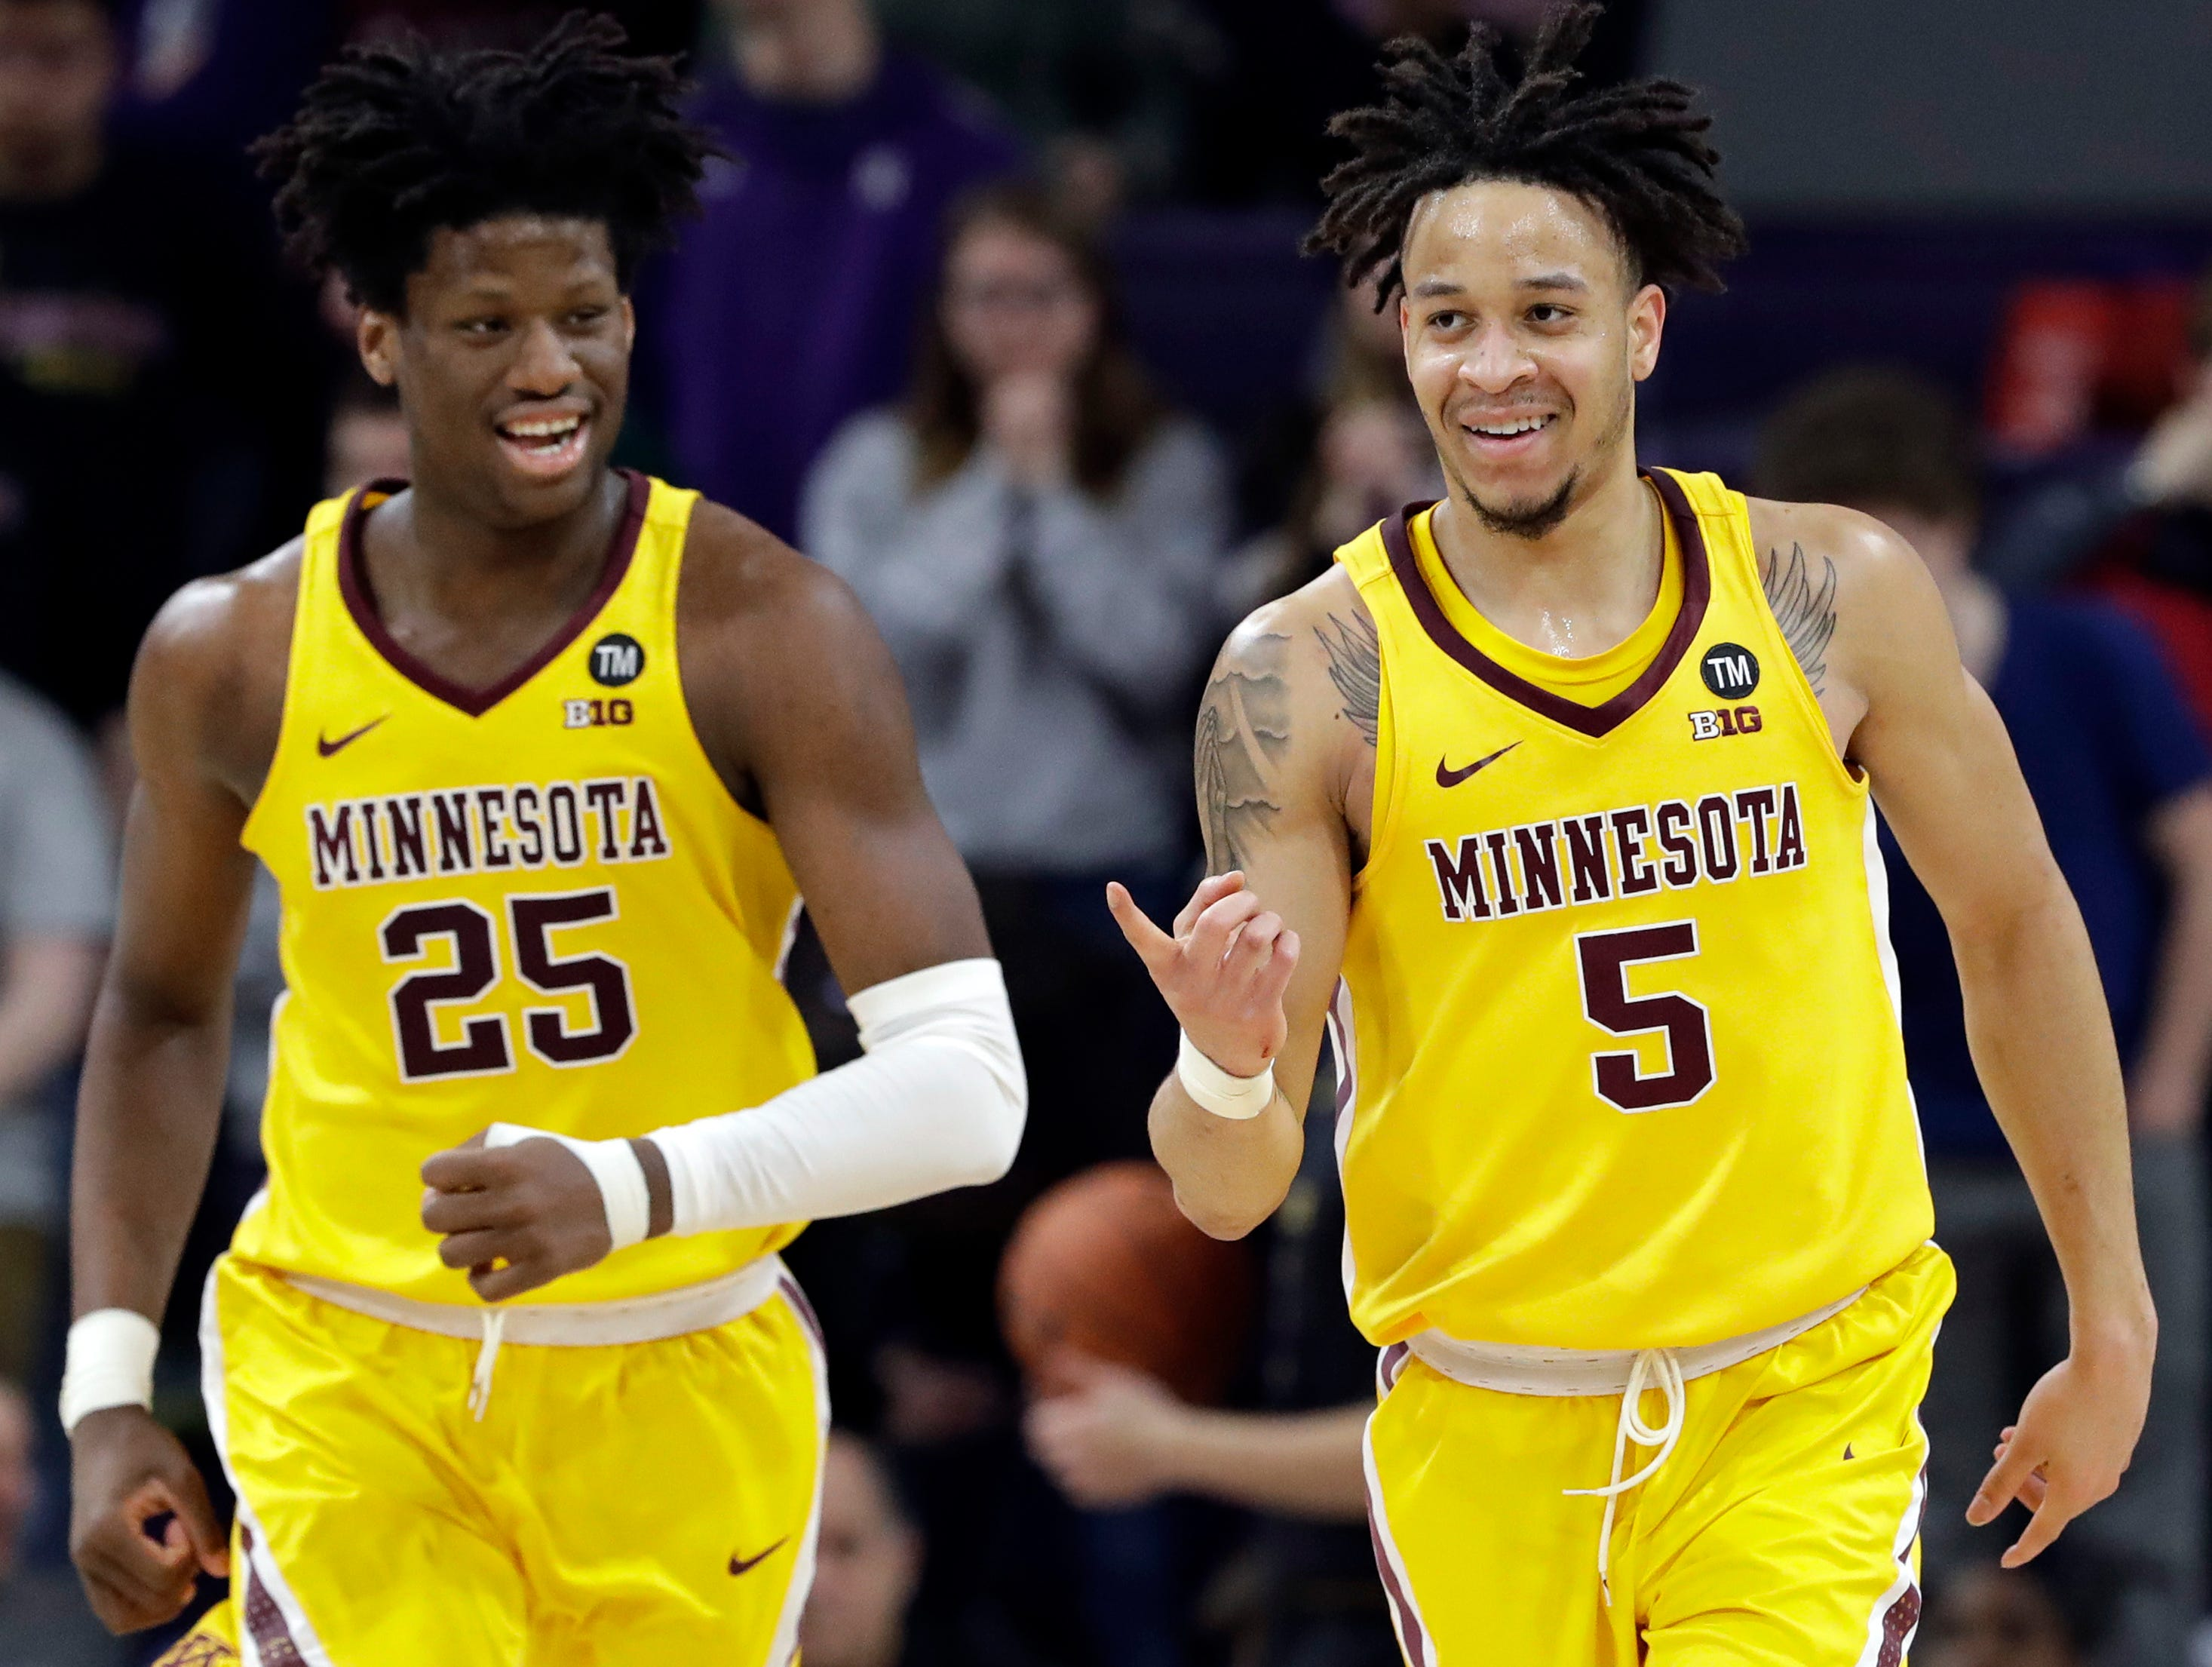 9. Minnesota (18-11, 8-10) – The Golden Gophers have been living life on the bubble for a while now and a win at Northwestern sure didn't so much to change that. The final week of the regular season, however, offers plenty of opportunity. With games at home against Purdue and at Maryland, there is nothing but opportunity left for the Gophers to solidify their NCAA Tournament resume. Last week: 9.